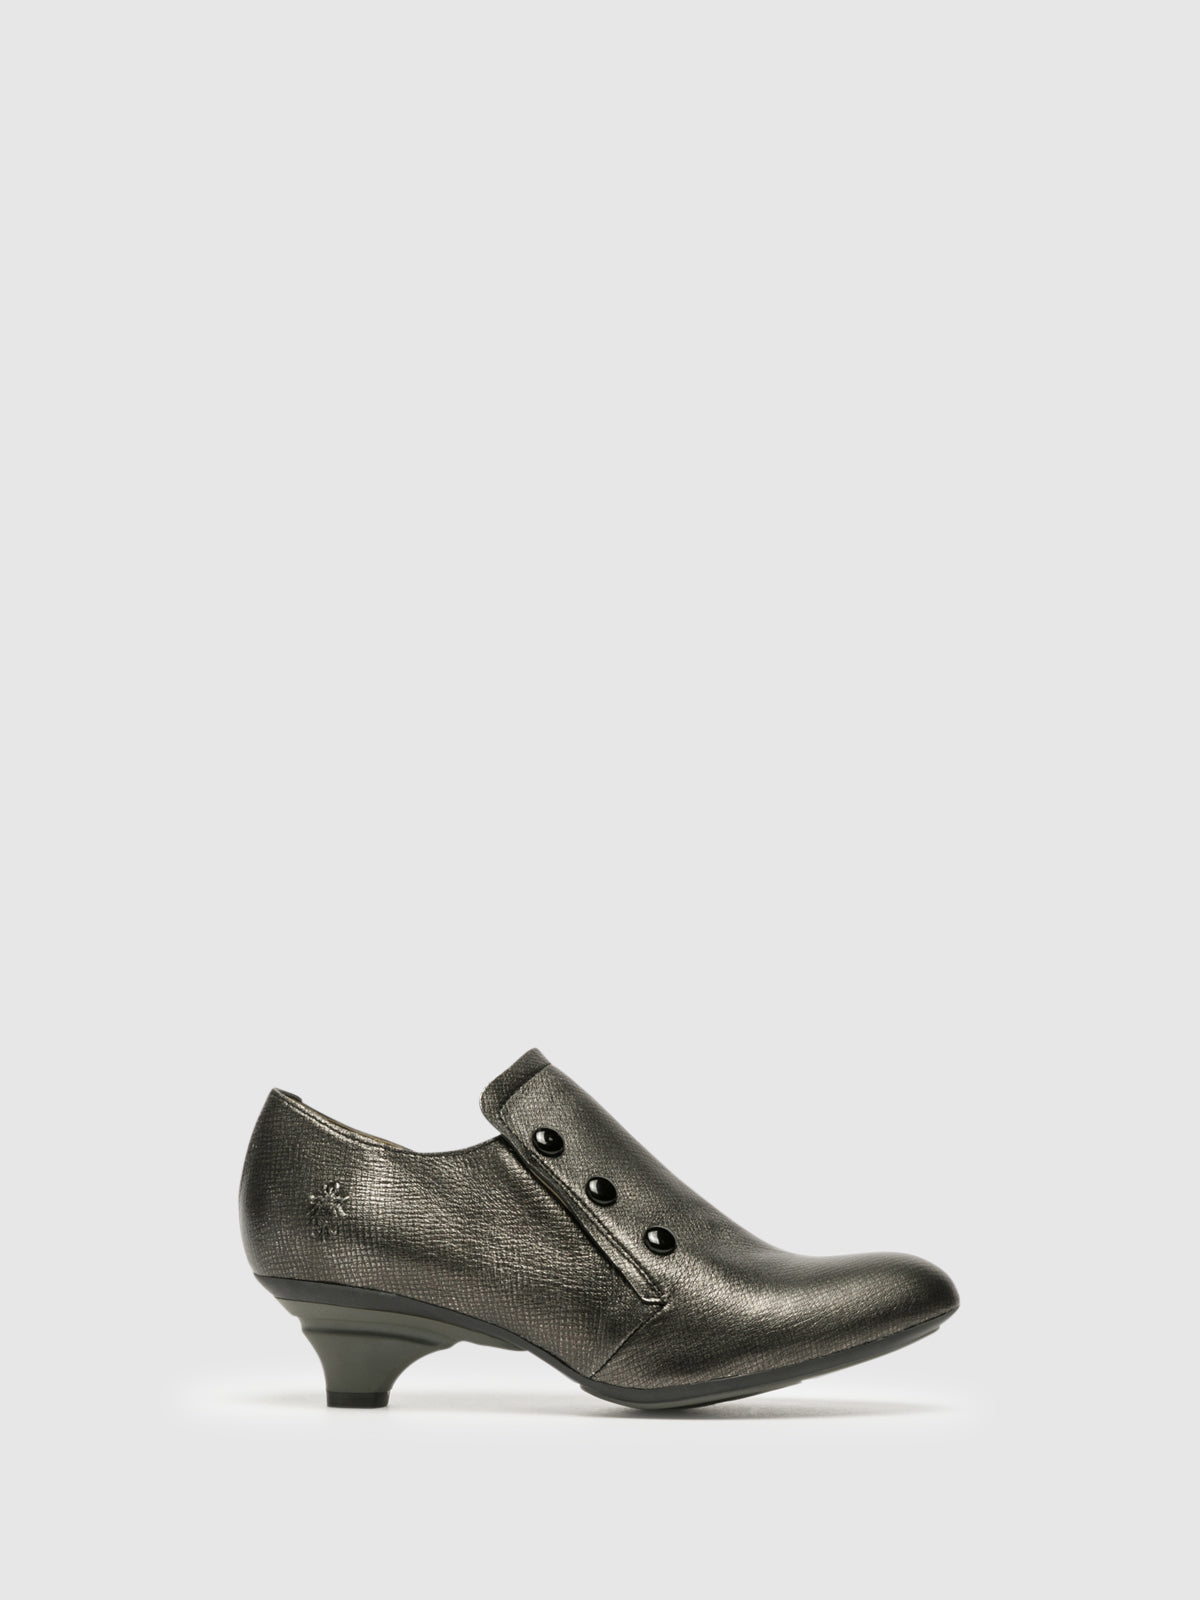 Fly London Silver Kitten Heel Shoes